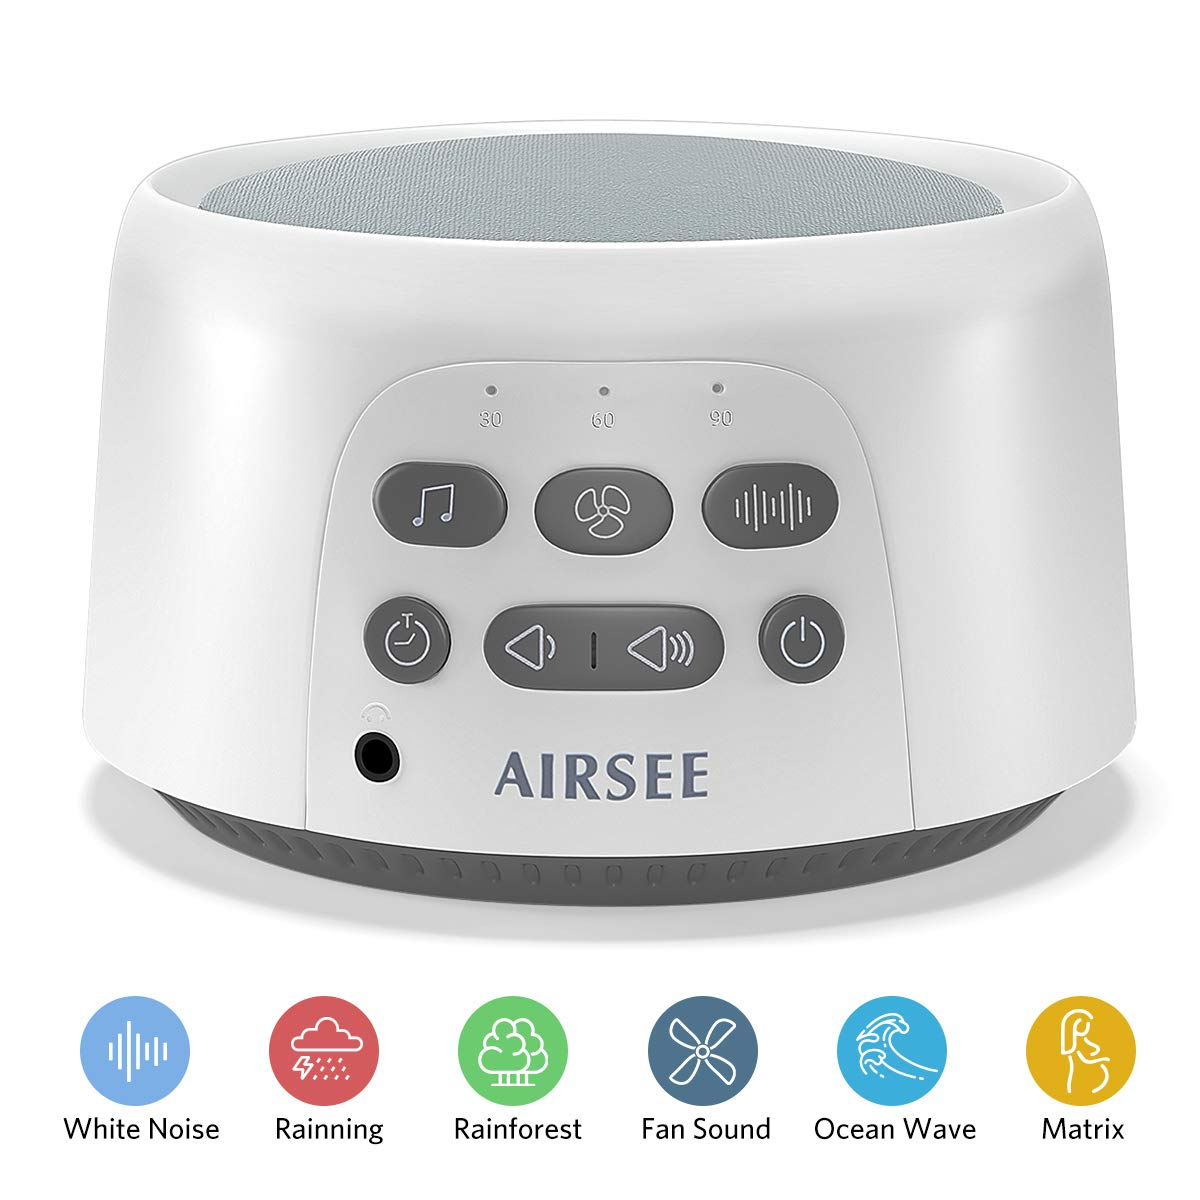 AIRSEE White Noise Machine - Portable Sound Machine with 24 Non-Looping Soothing Sounds for Sleeping, Sleep Sound Therapy for Kids, Adults and Travel by AIRSEE